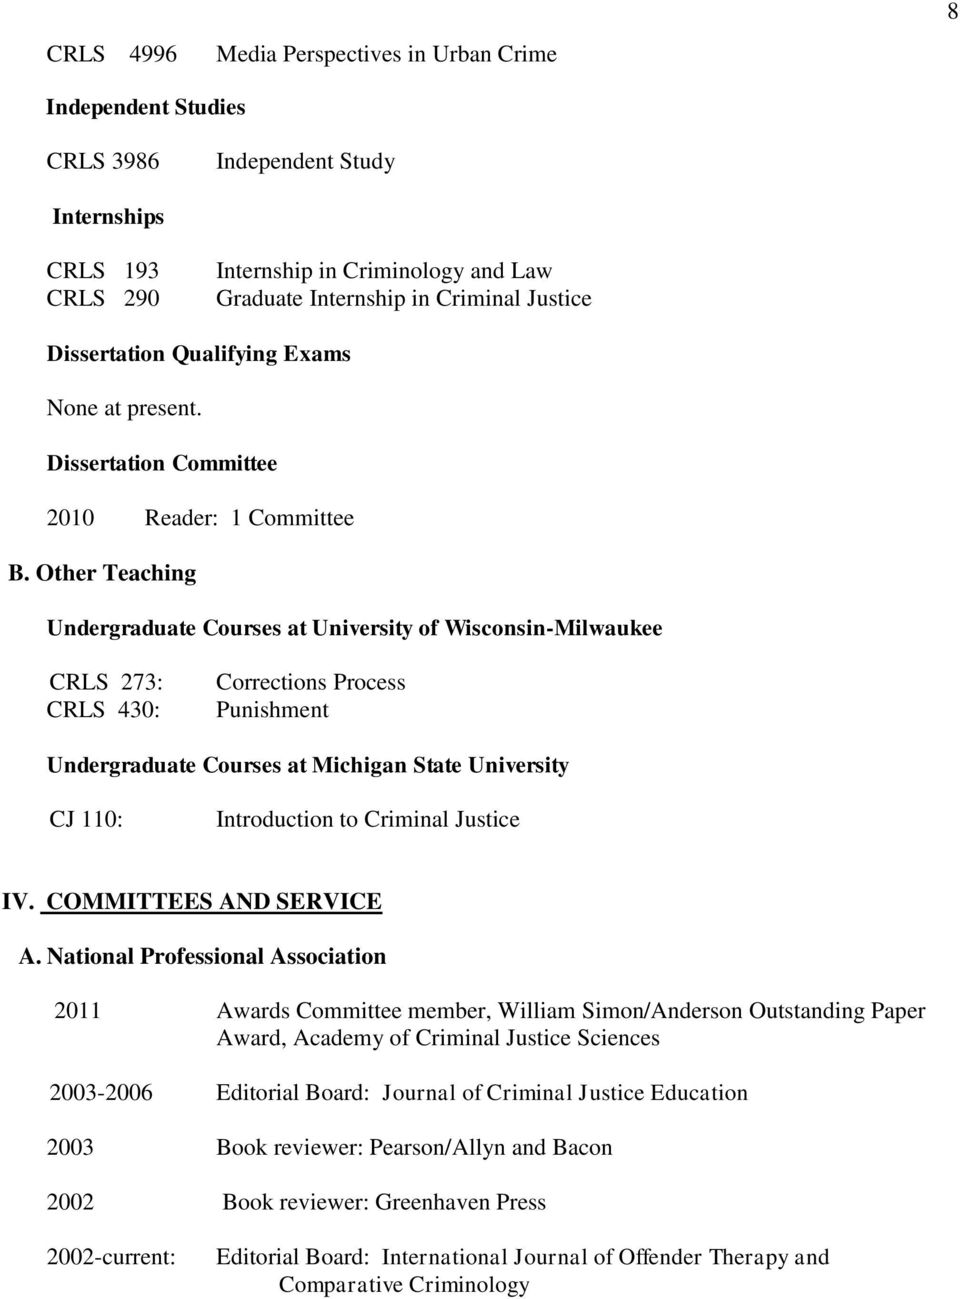 Other Teaching Undergraduate Courses at University of Wisconsin-Milwaukee CRLS 273: CRLS 430: Corrections Process Punishment Undergraduate Courses at Michigan State University CJ 110: Introduction to